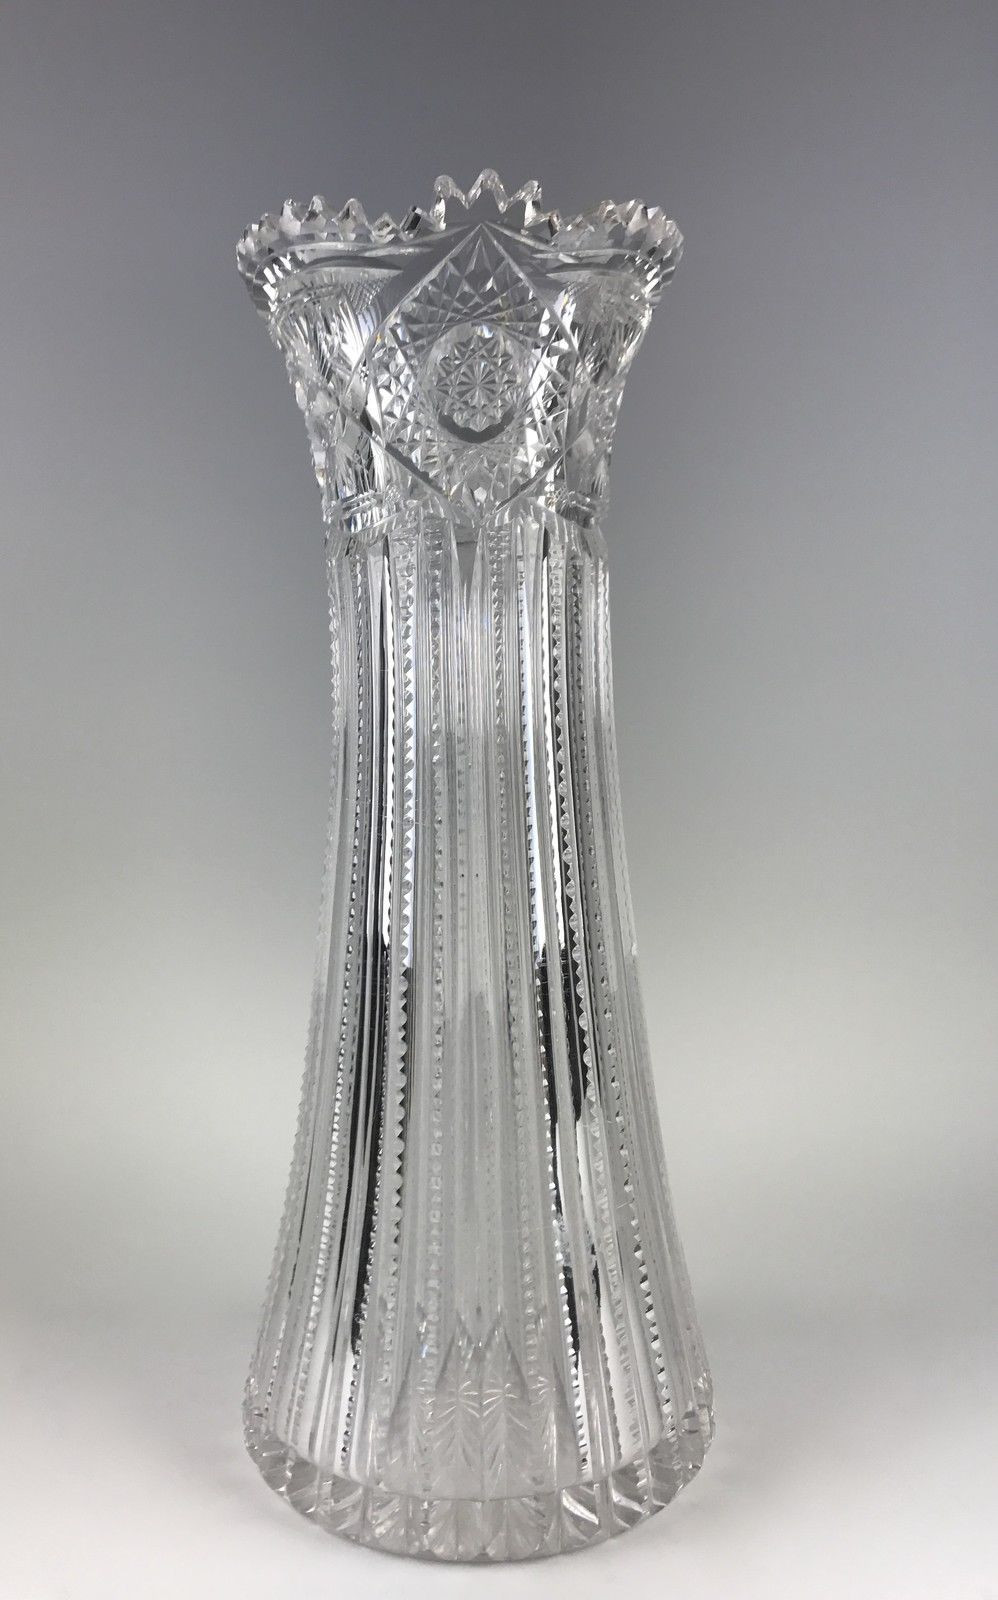 extra large clear vase of large 12 3 8 american brilliant period abp corset vase d˜ddµd¸ ddn for large 12 3 8 american brilliant period abp corset vase glass dishes